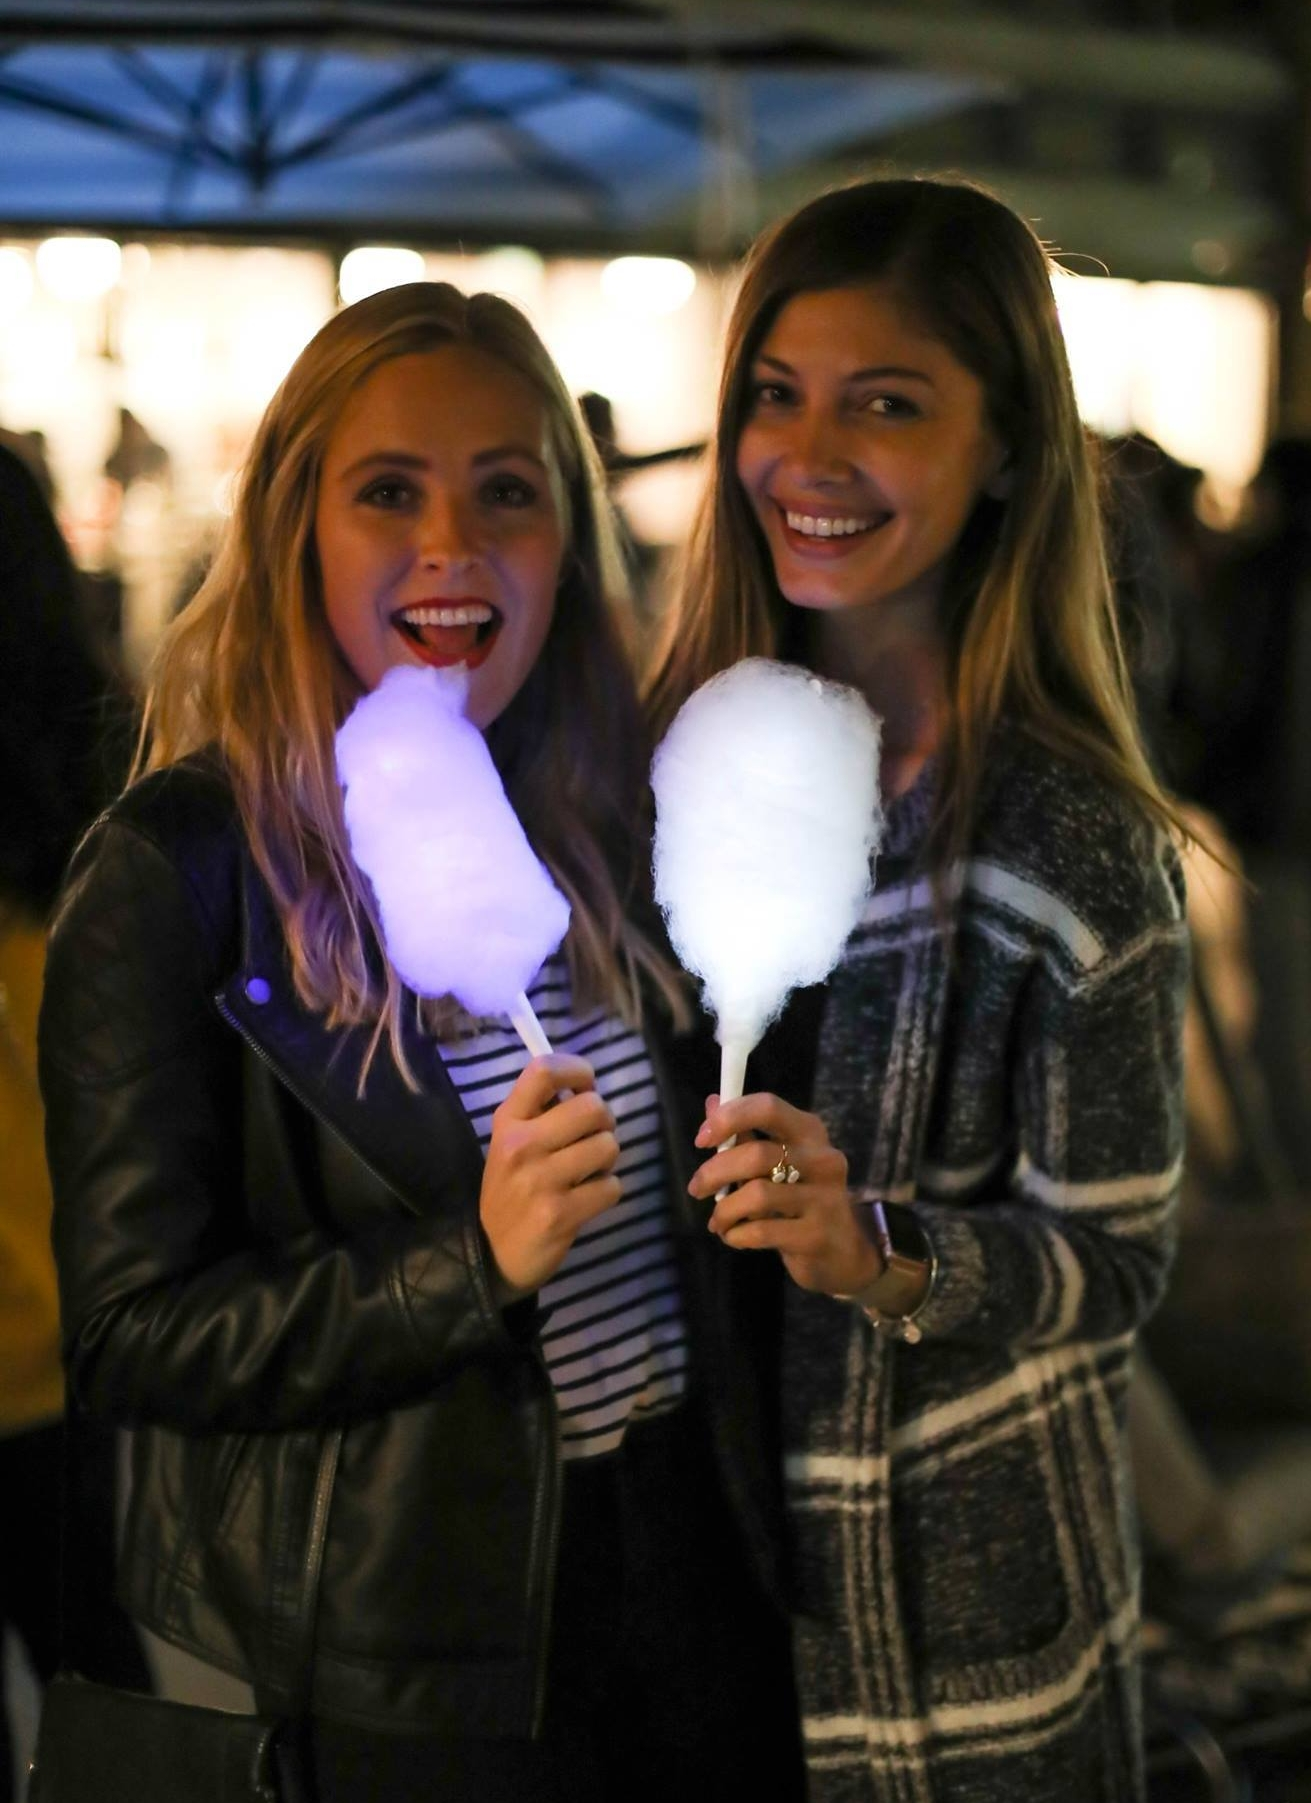 Guests enjoyed glowing cotton candy in three unique flavors.